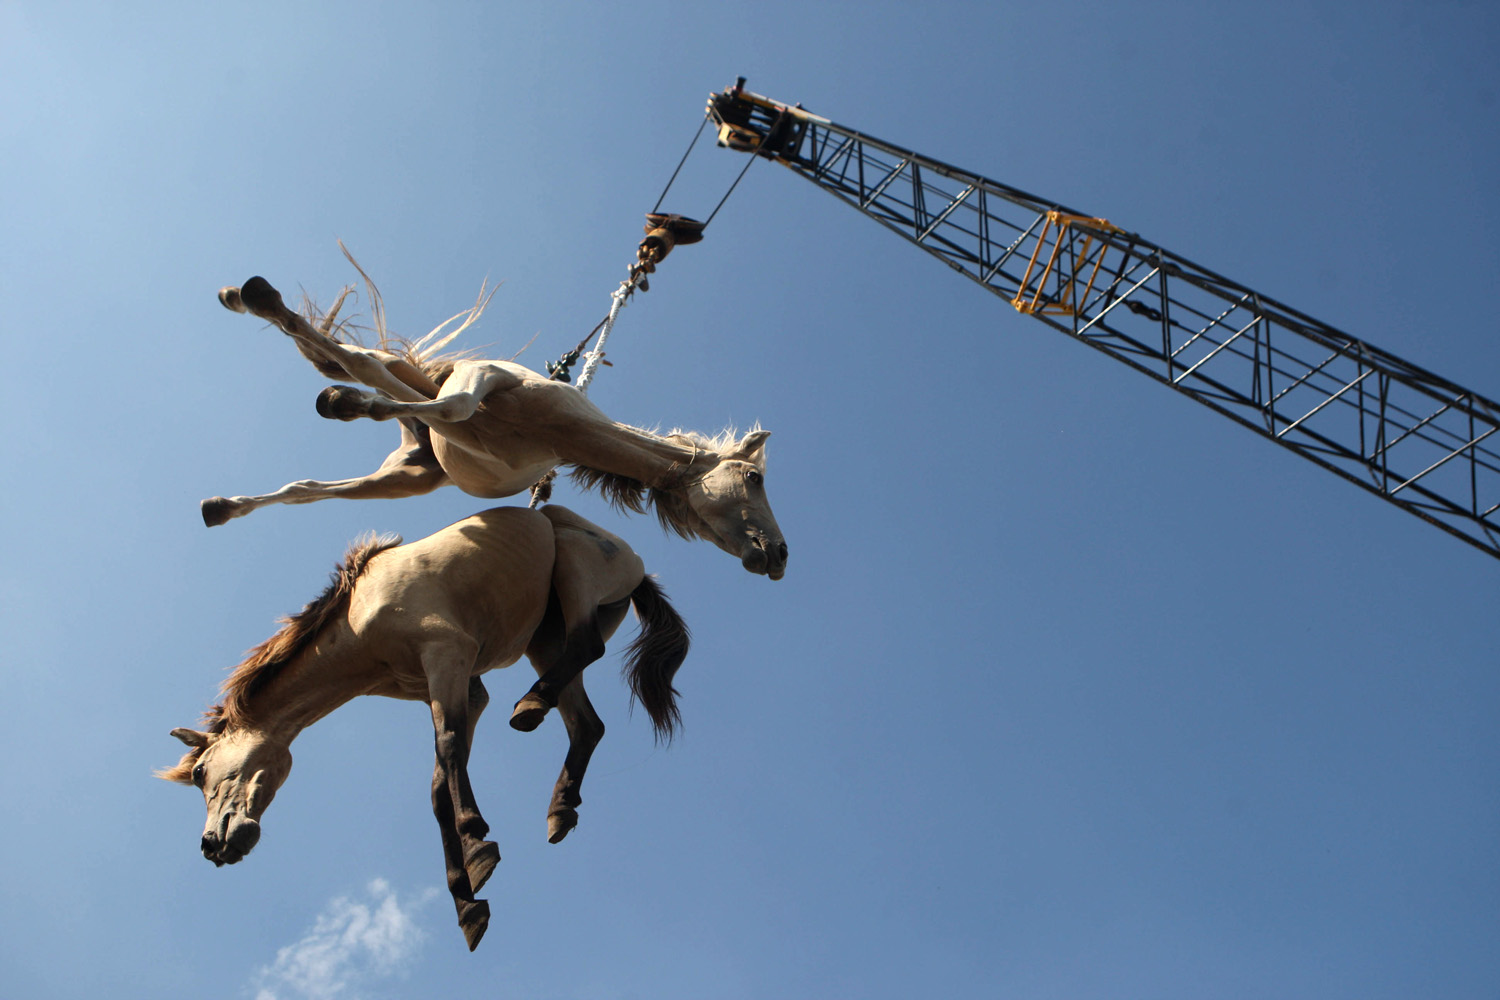 Feb. 8, 2013. Horses are hoisted in the air by a crane as they're being transferred from a cargo ship onto a truck upon arrival at a port in Surabaya, East Java, Indonesia.